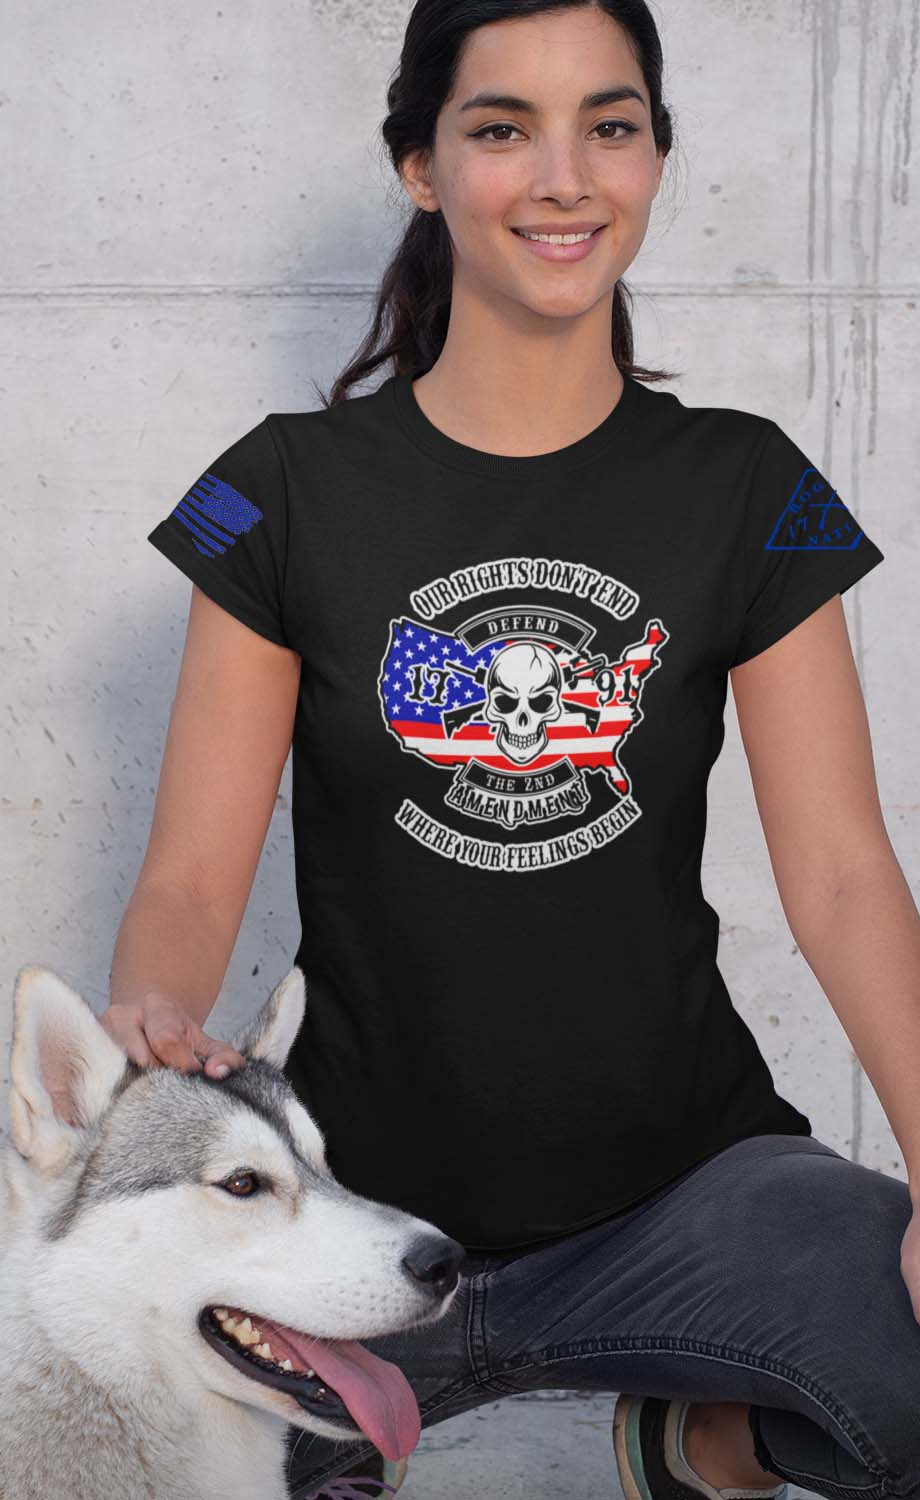 Our Rights Don't End Womens Tshirt in Black